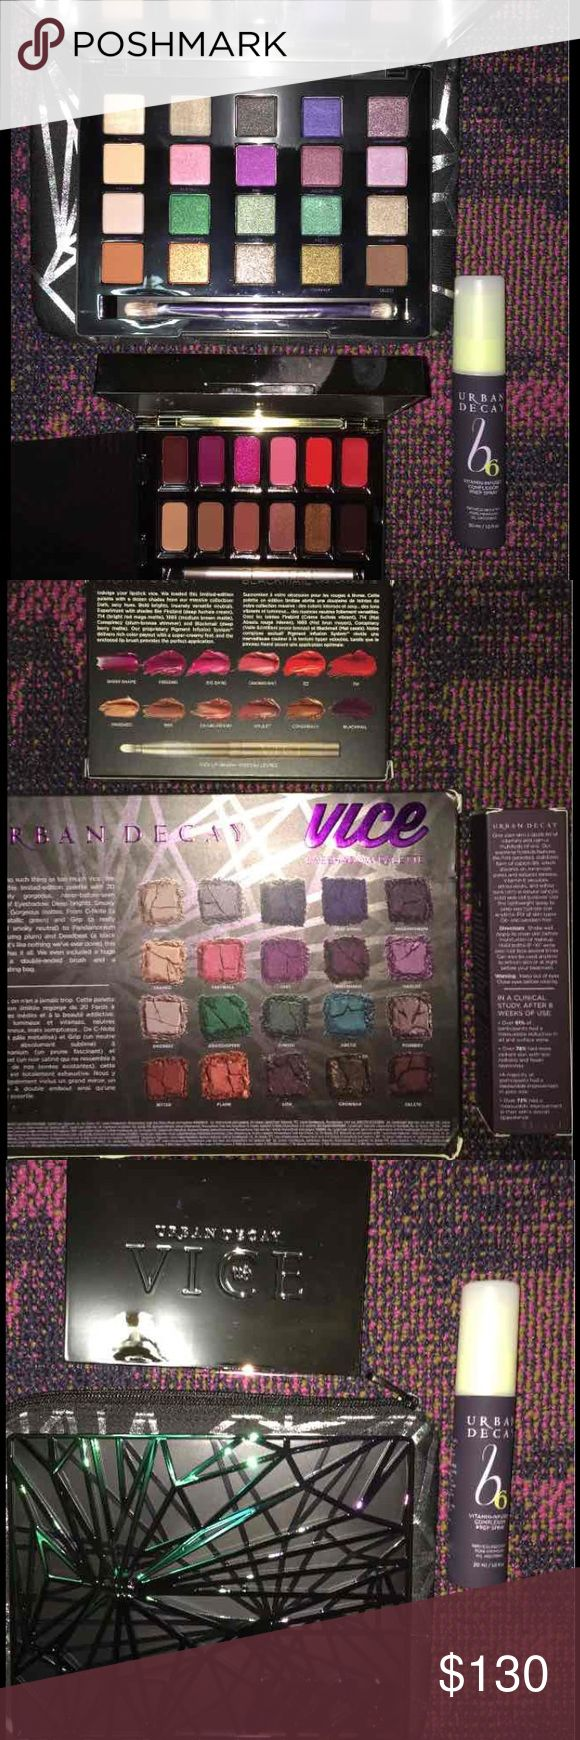 URBAN DECAY LIMITED EDITION SET Brand New Limited Edition Authentic Urban Decay Vice Eye and Lip Palette Set Includes: 1-Urban Decay Vice 4 Eye Palette  1 - Urban Decay Vice (Blackmail) Lipstick Palette  1 - Urban Decay B6 Vitamin Infused Complexion Prep Spray                             NEW IN BOX Urban Decay Makeup Eyeshadow